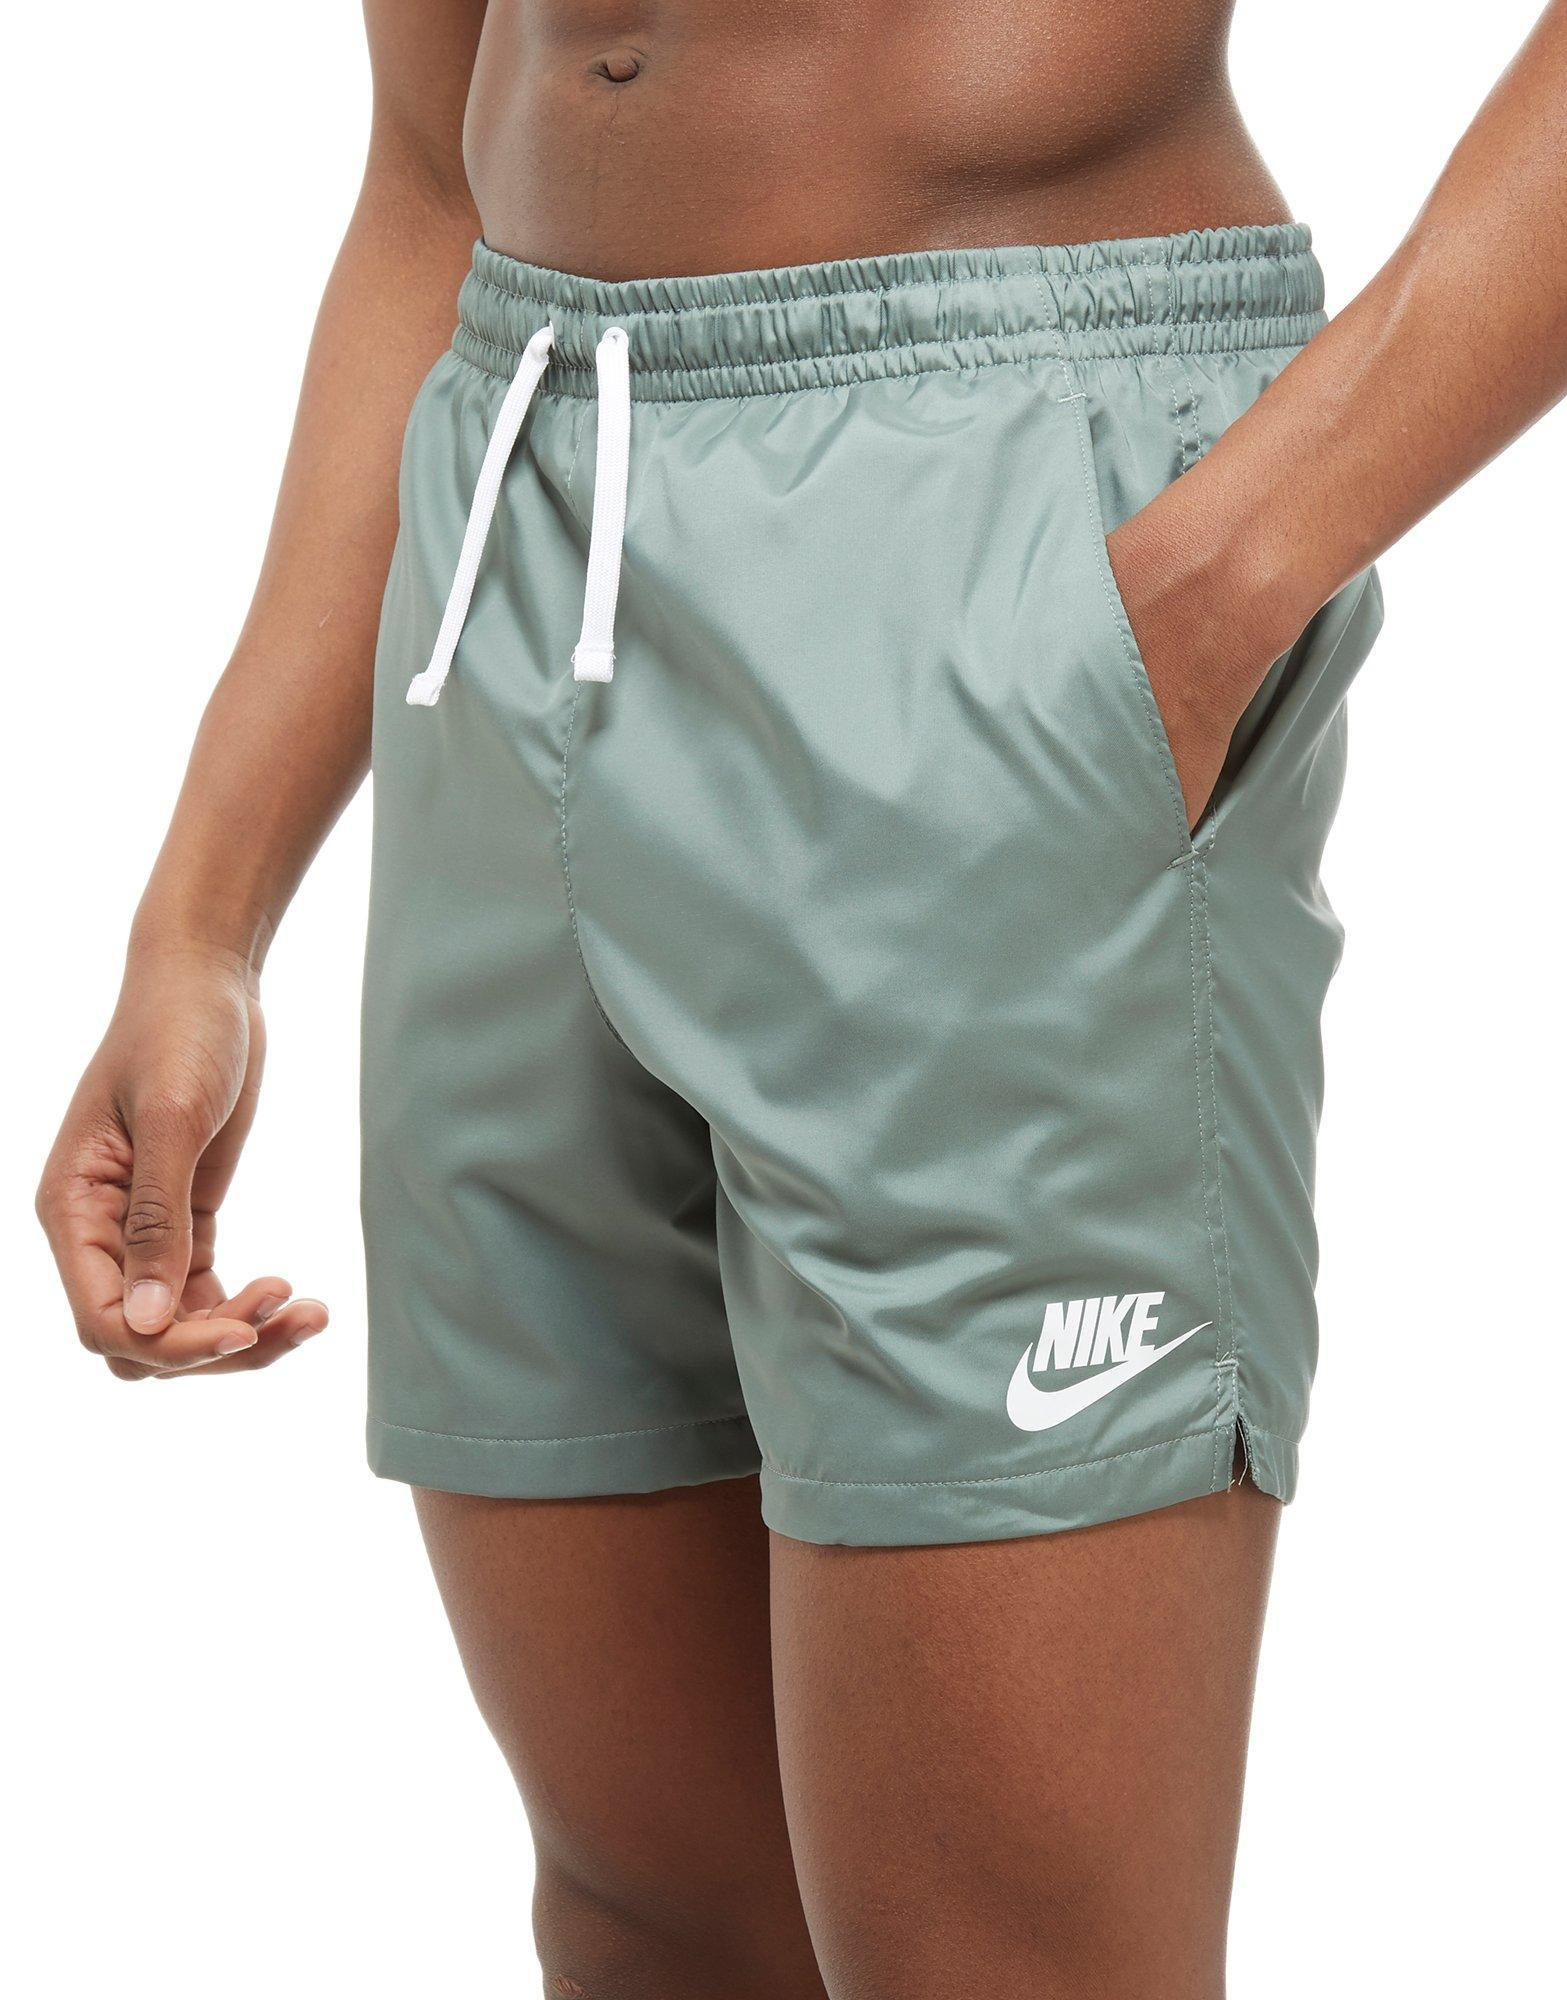 a61d14b8d4 Nike Flow Swim Shorts in Green for Men - Lyst